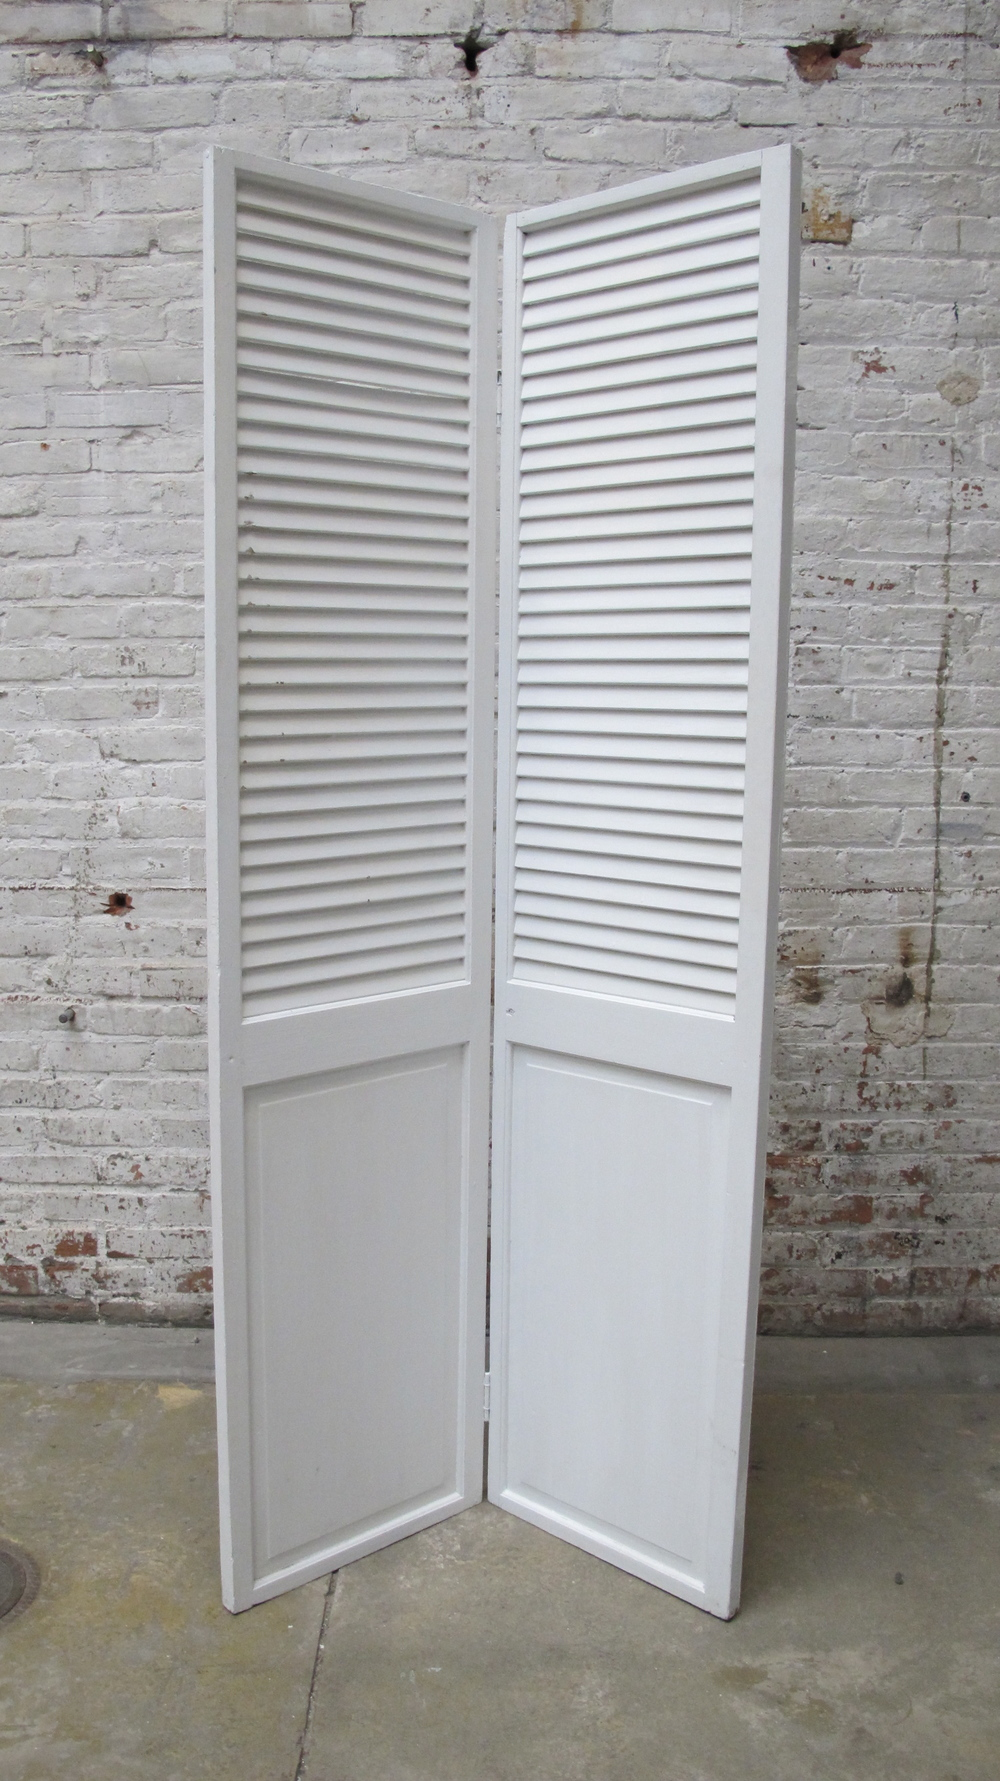 White 2-panel Screen - BACK $75